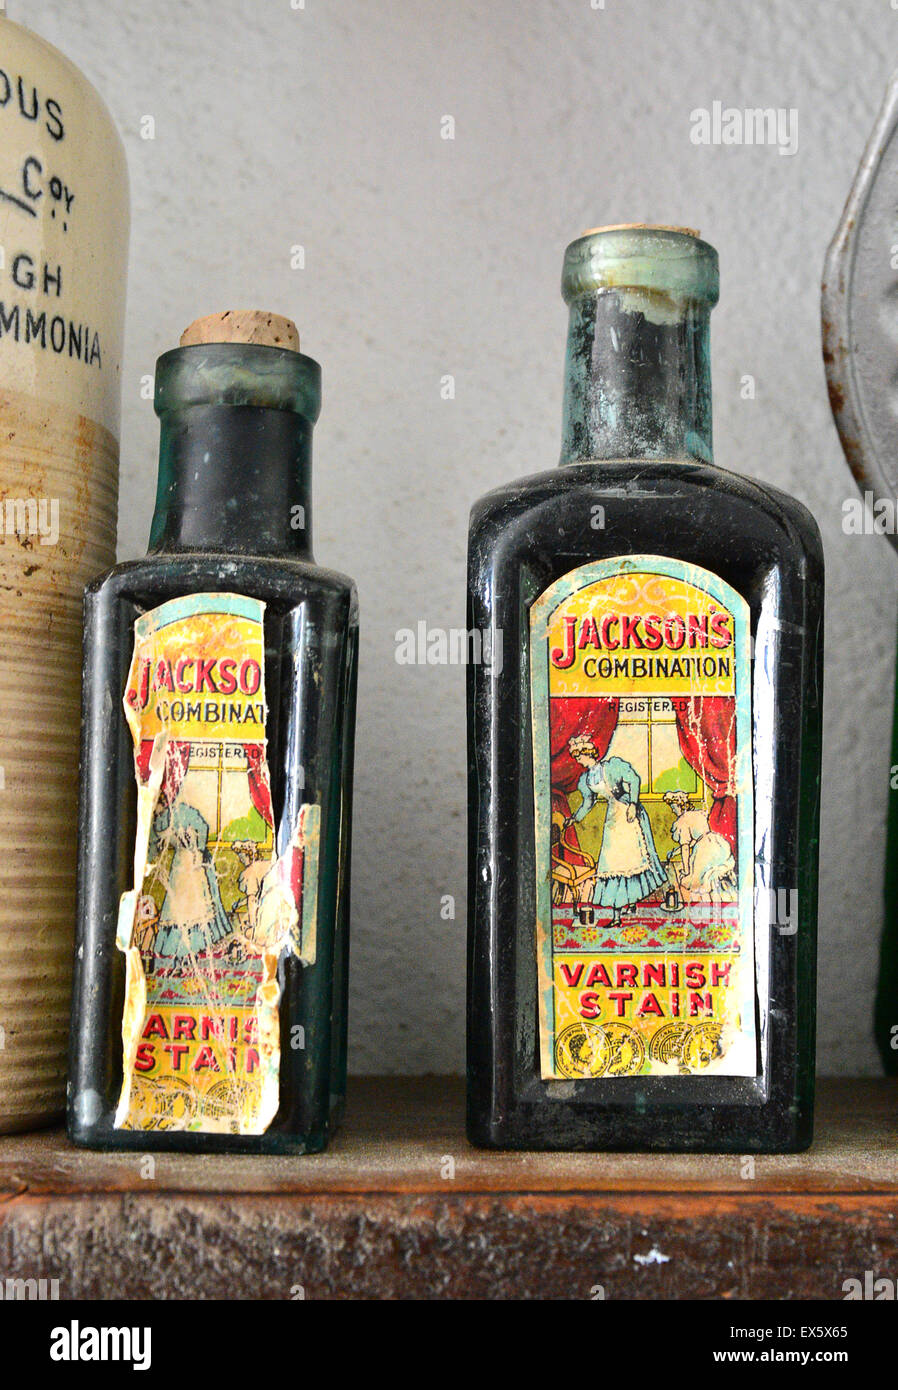 Old bottles of Jackson's combination Varnish Stain on display at the Ulster American Folk Park - Stock Image